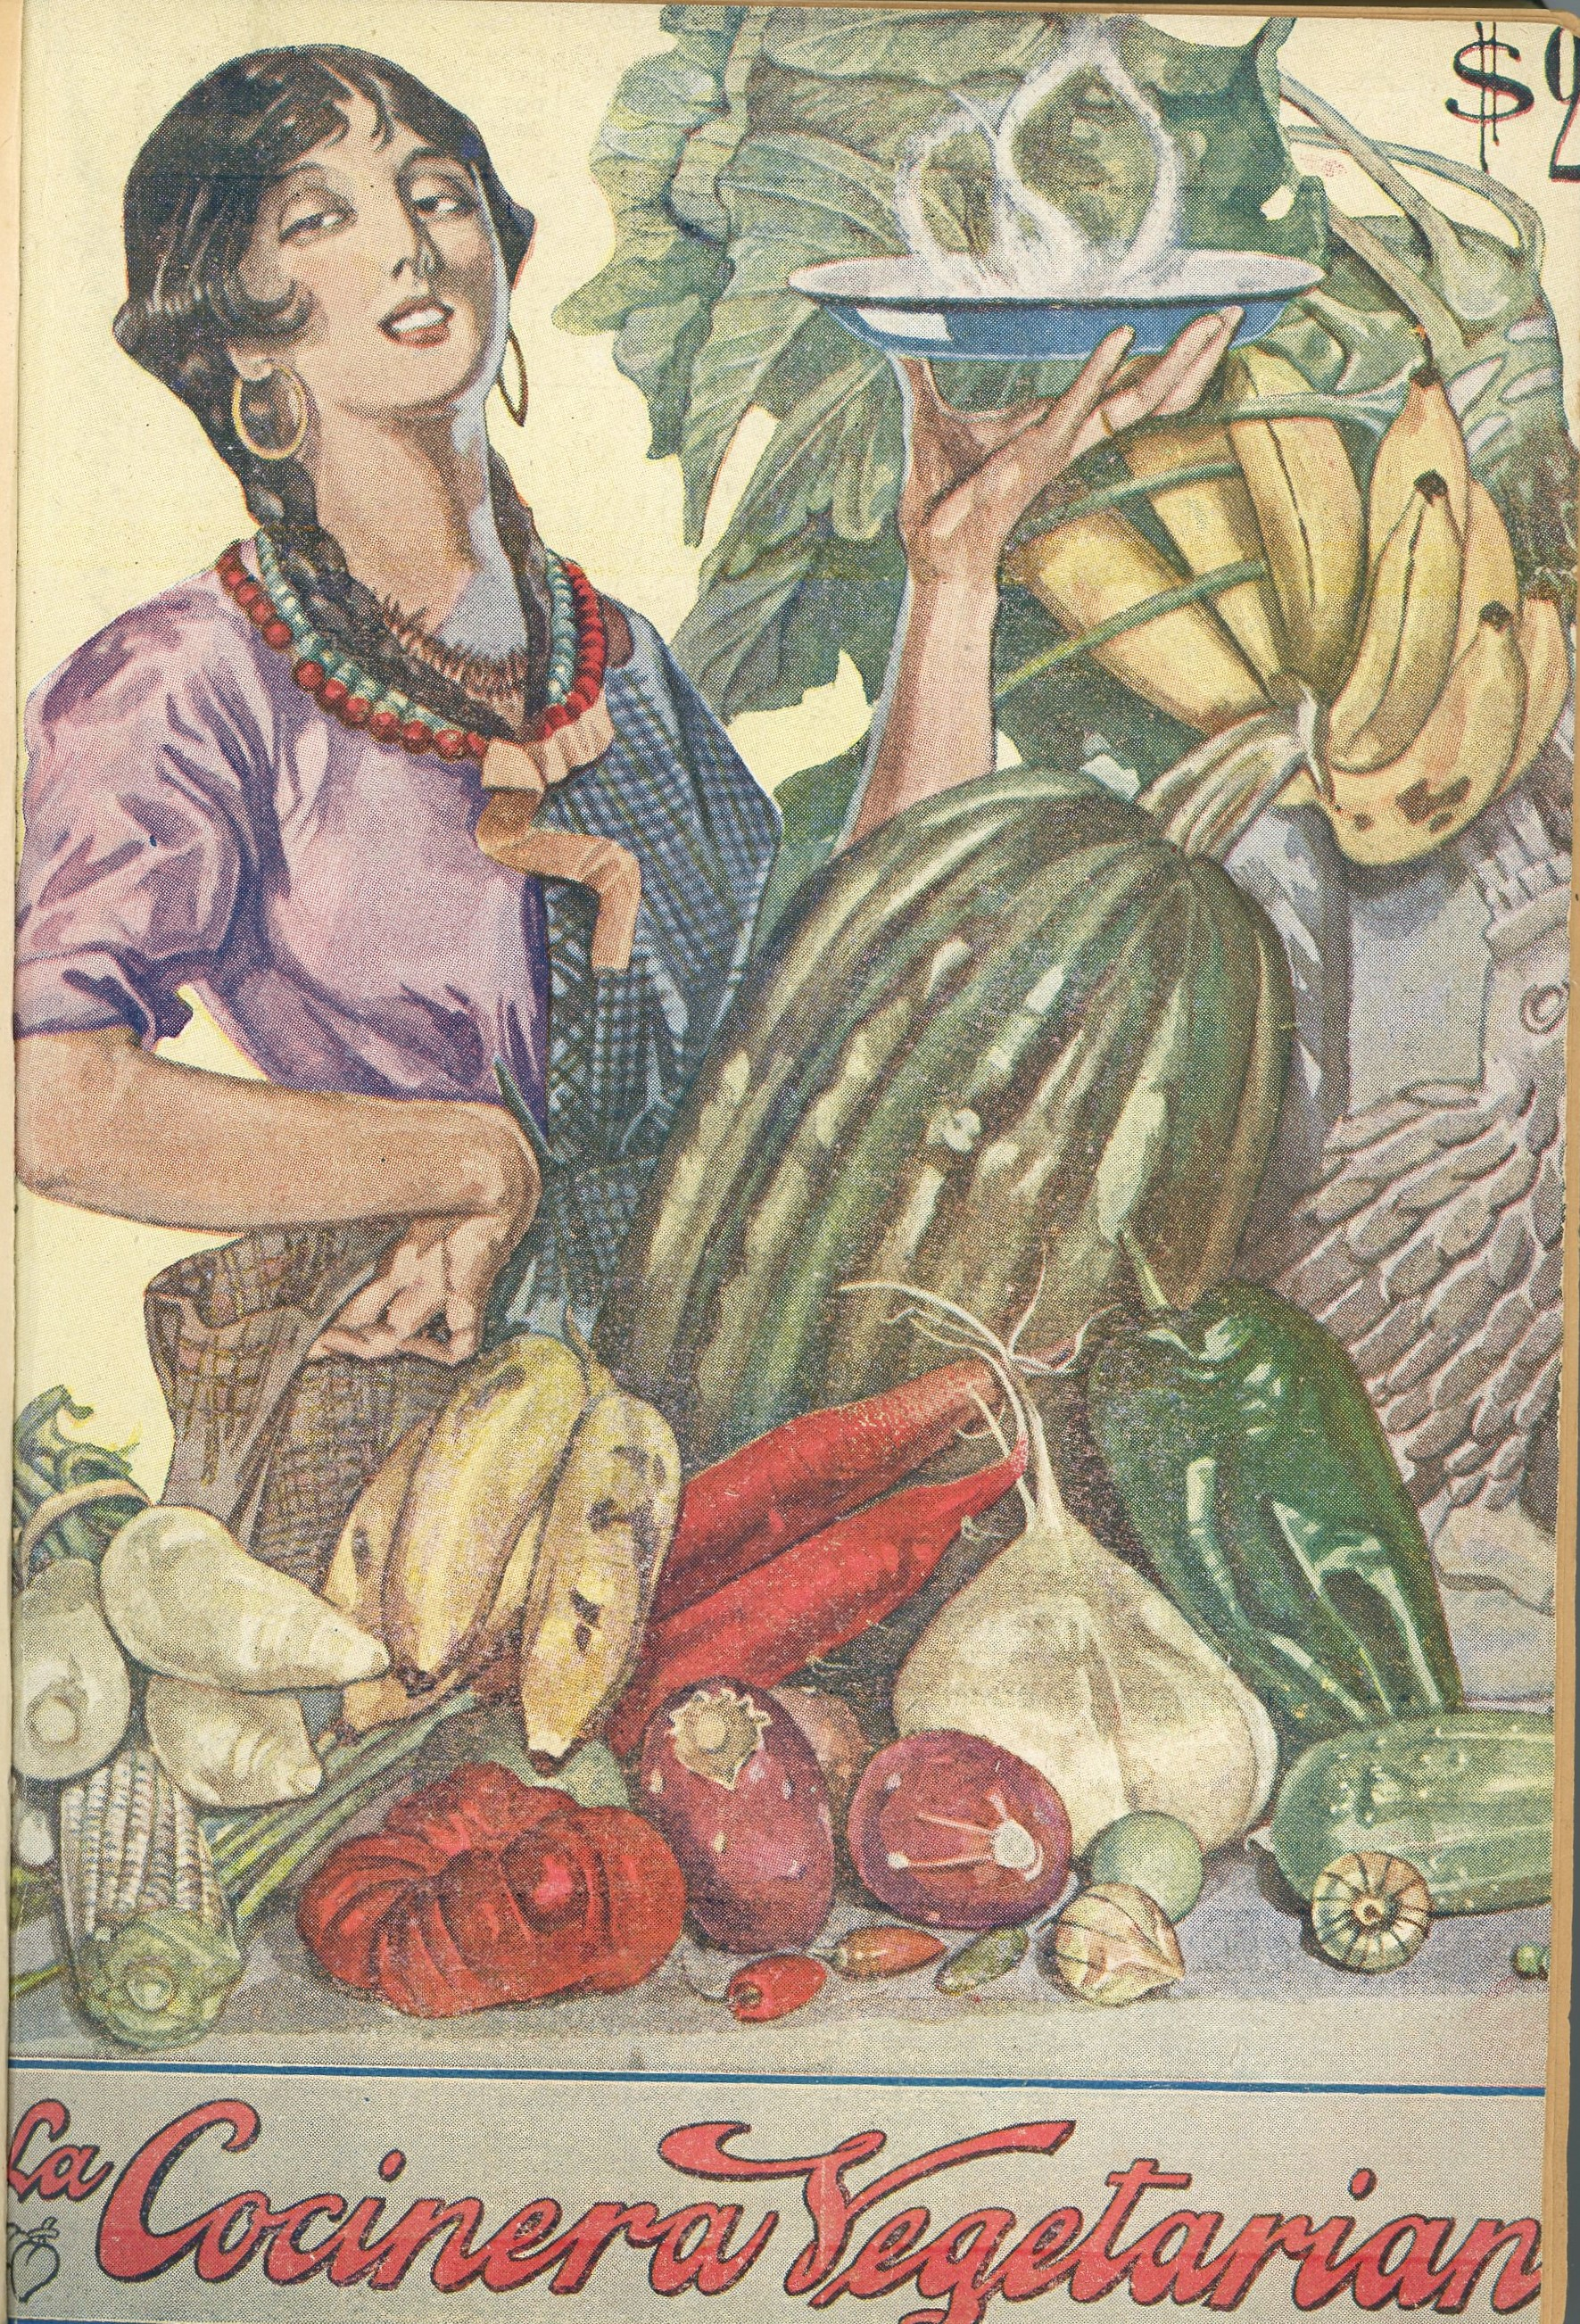 Cover for La cocinera vegetariana featuring a woman holding a dish of piping hot food with fruits and vegetables around her.